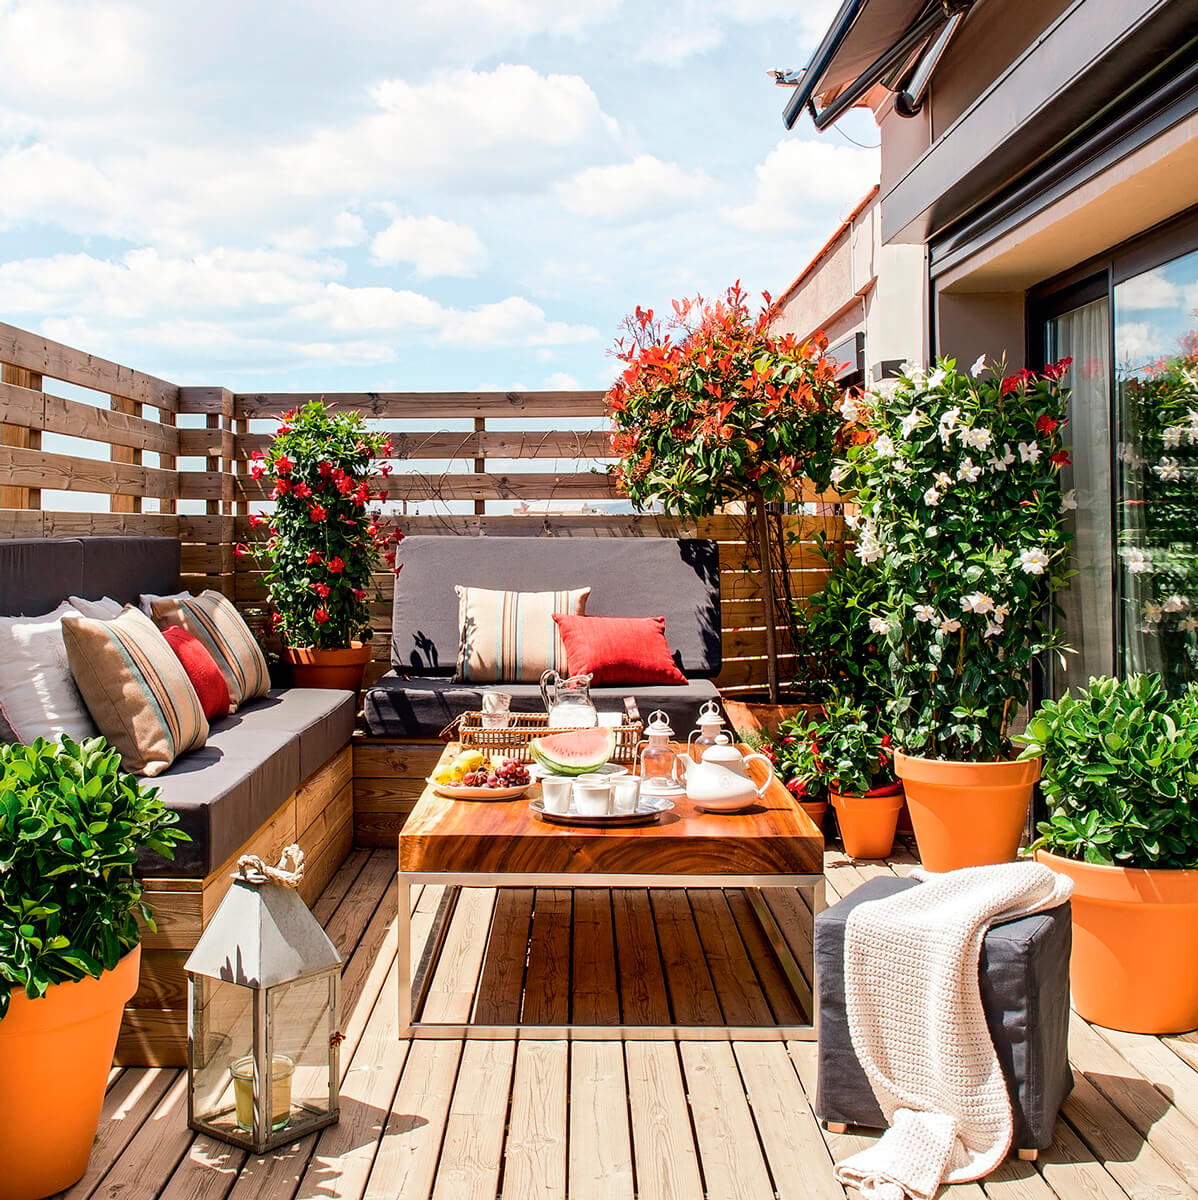 10 ideas para decorar terrazas y balcones handfie diy for Ideas para decorar una terraza exterior